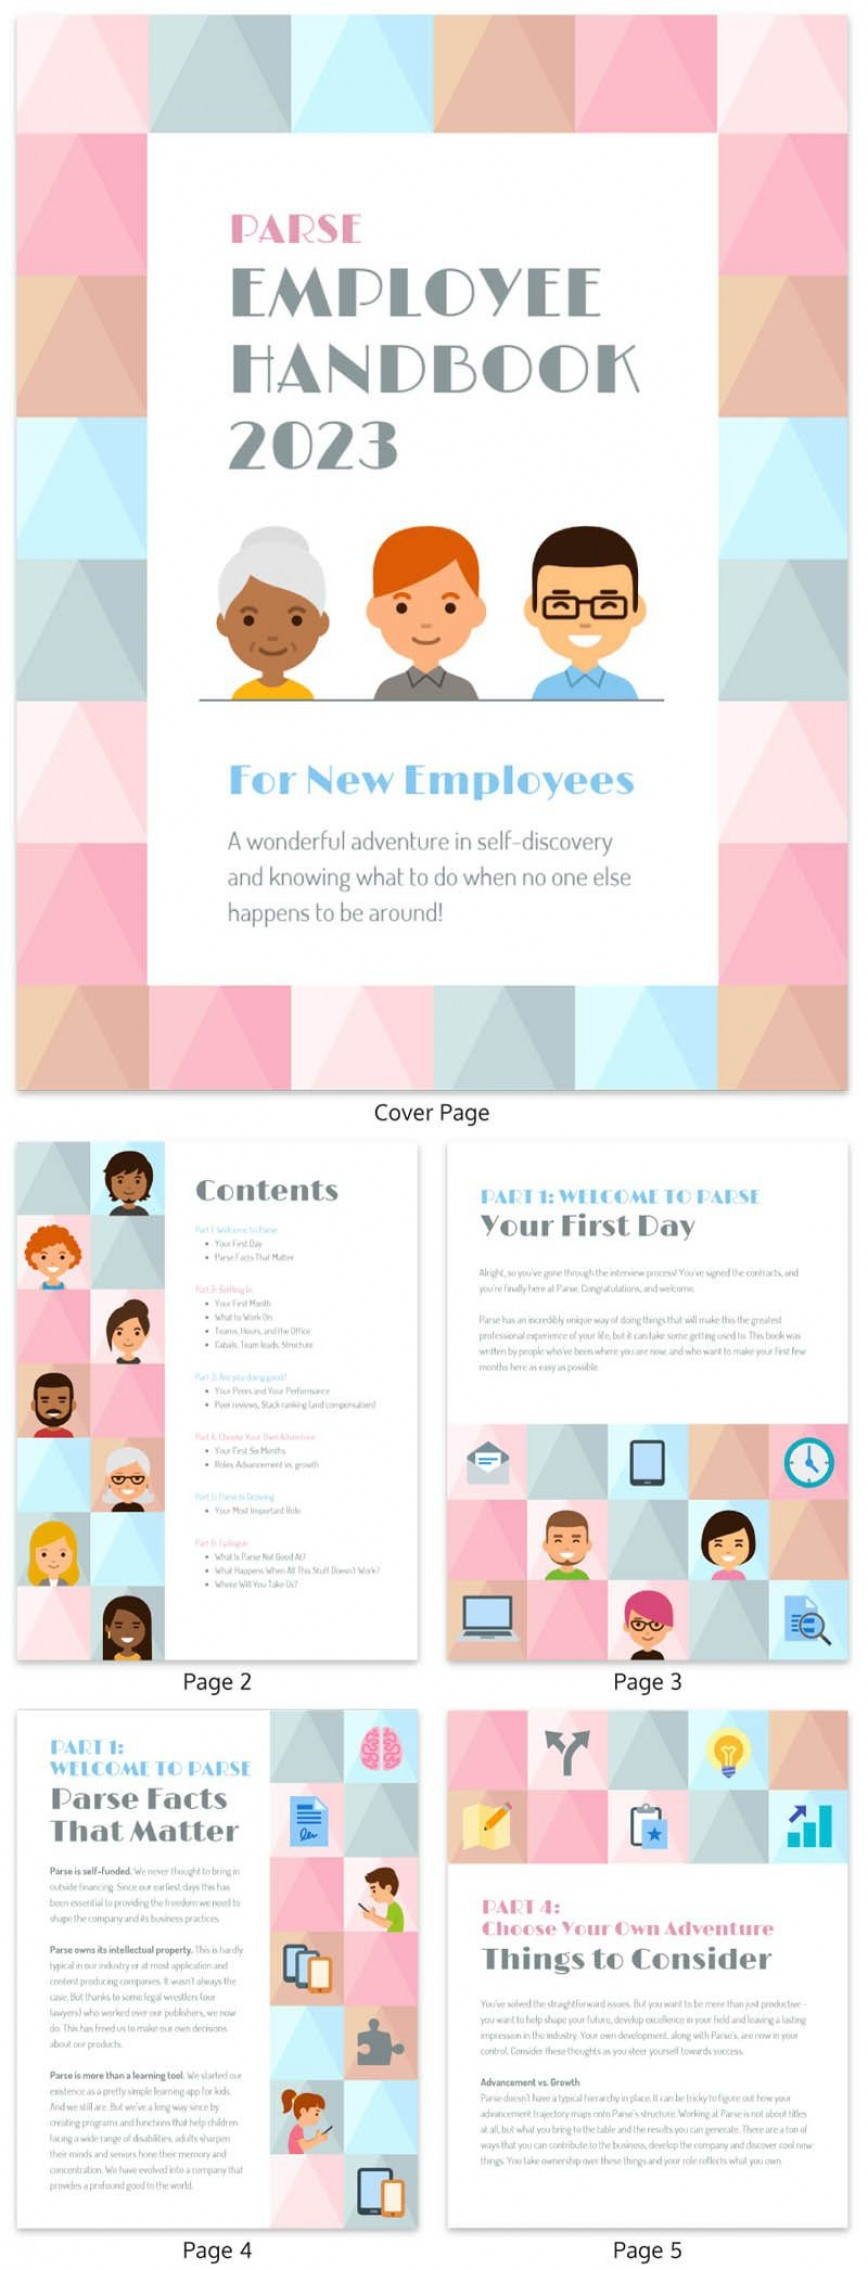 009 Unique Employee Handbook Template Free Example  Restaurant Download Induction Manual Singapore